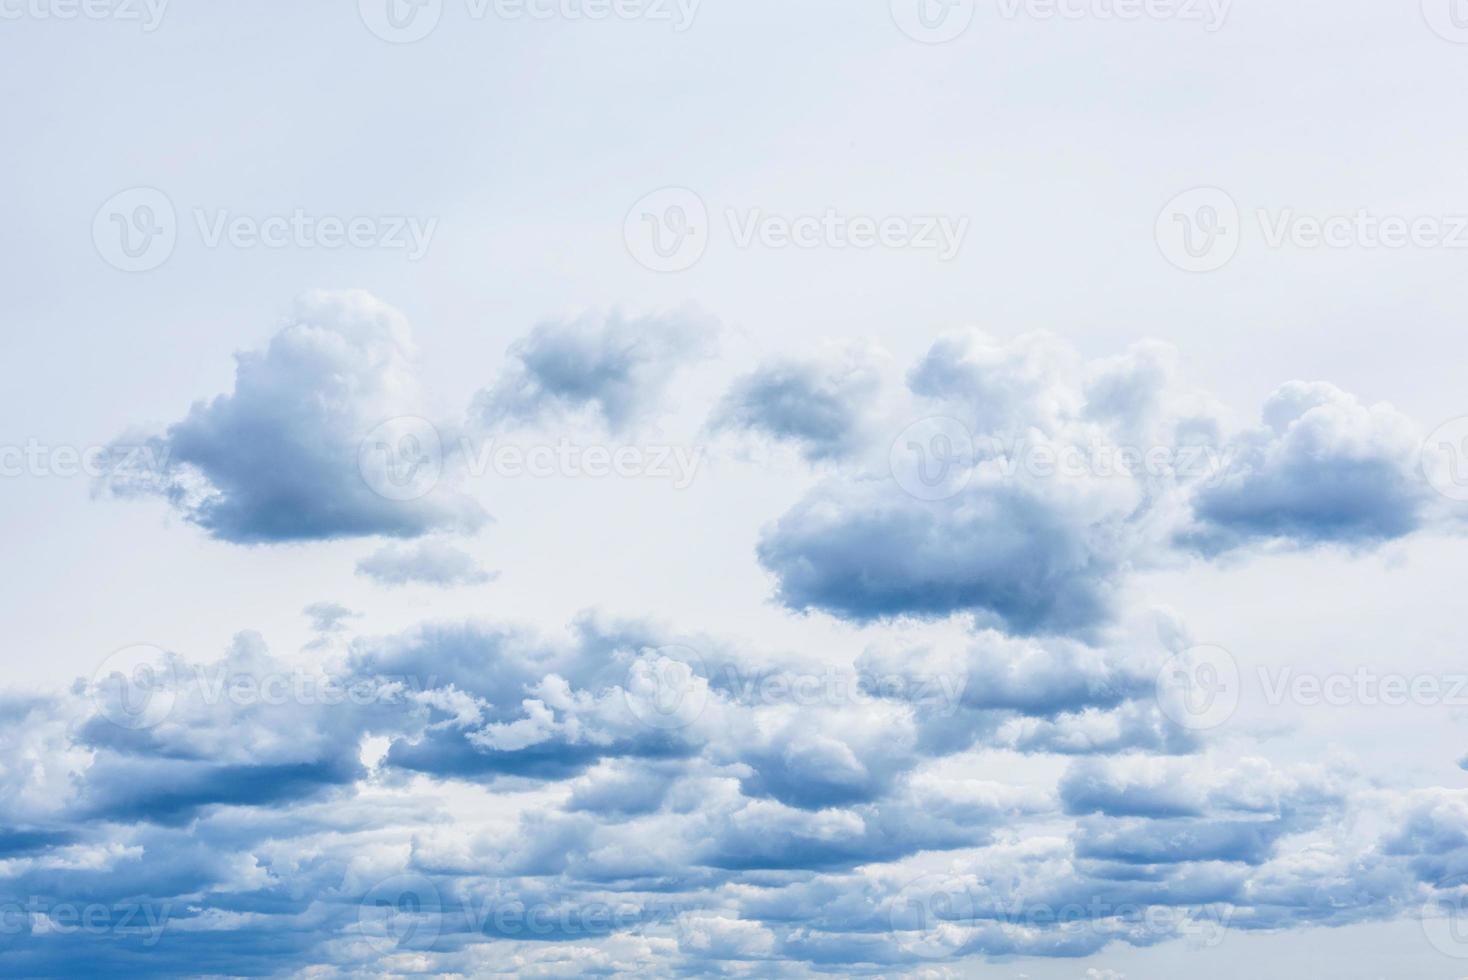 Dramatic storm sky background. It can be used as a background photo